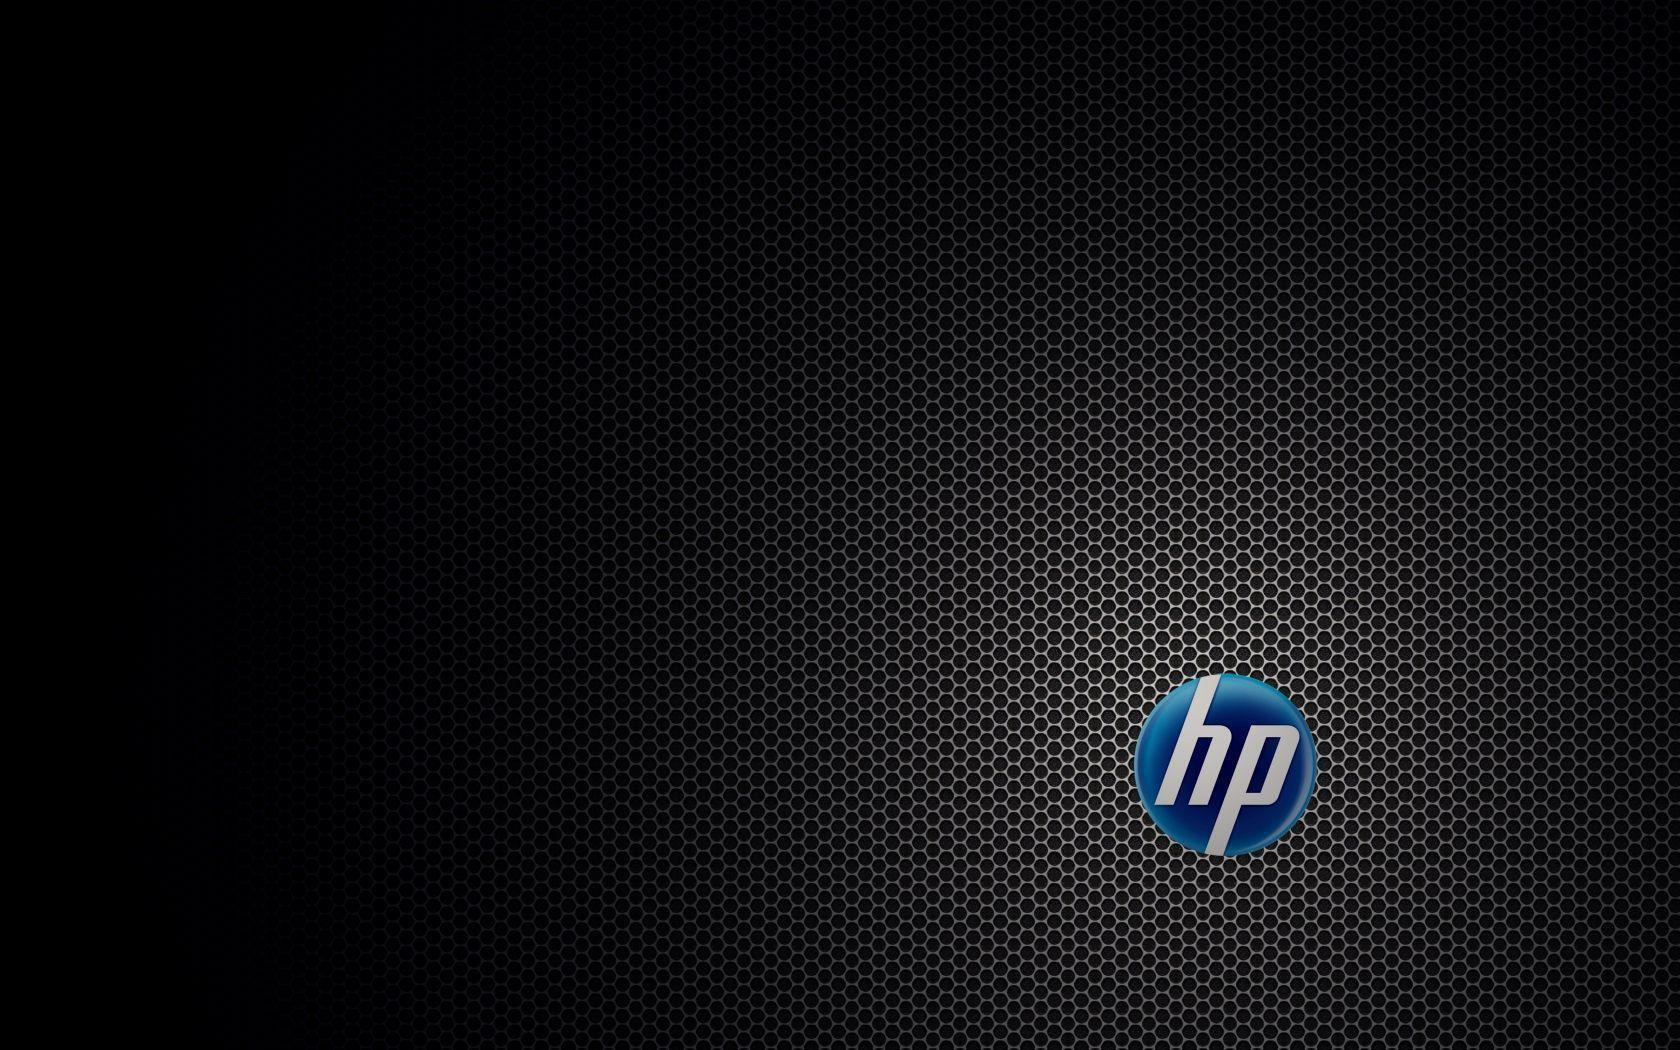 1680x1050 - Wallpapers for HP Envy 19